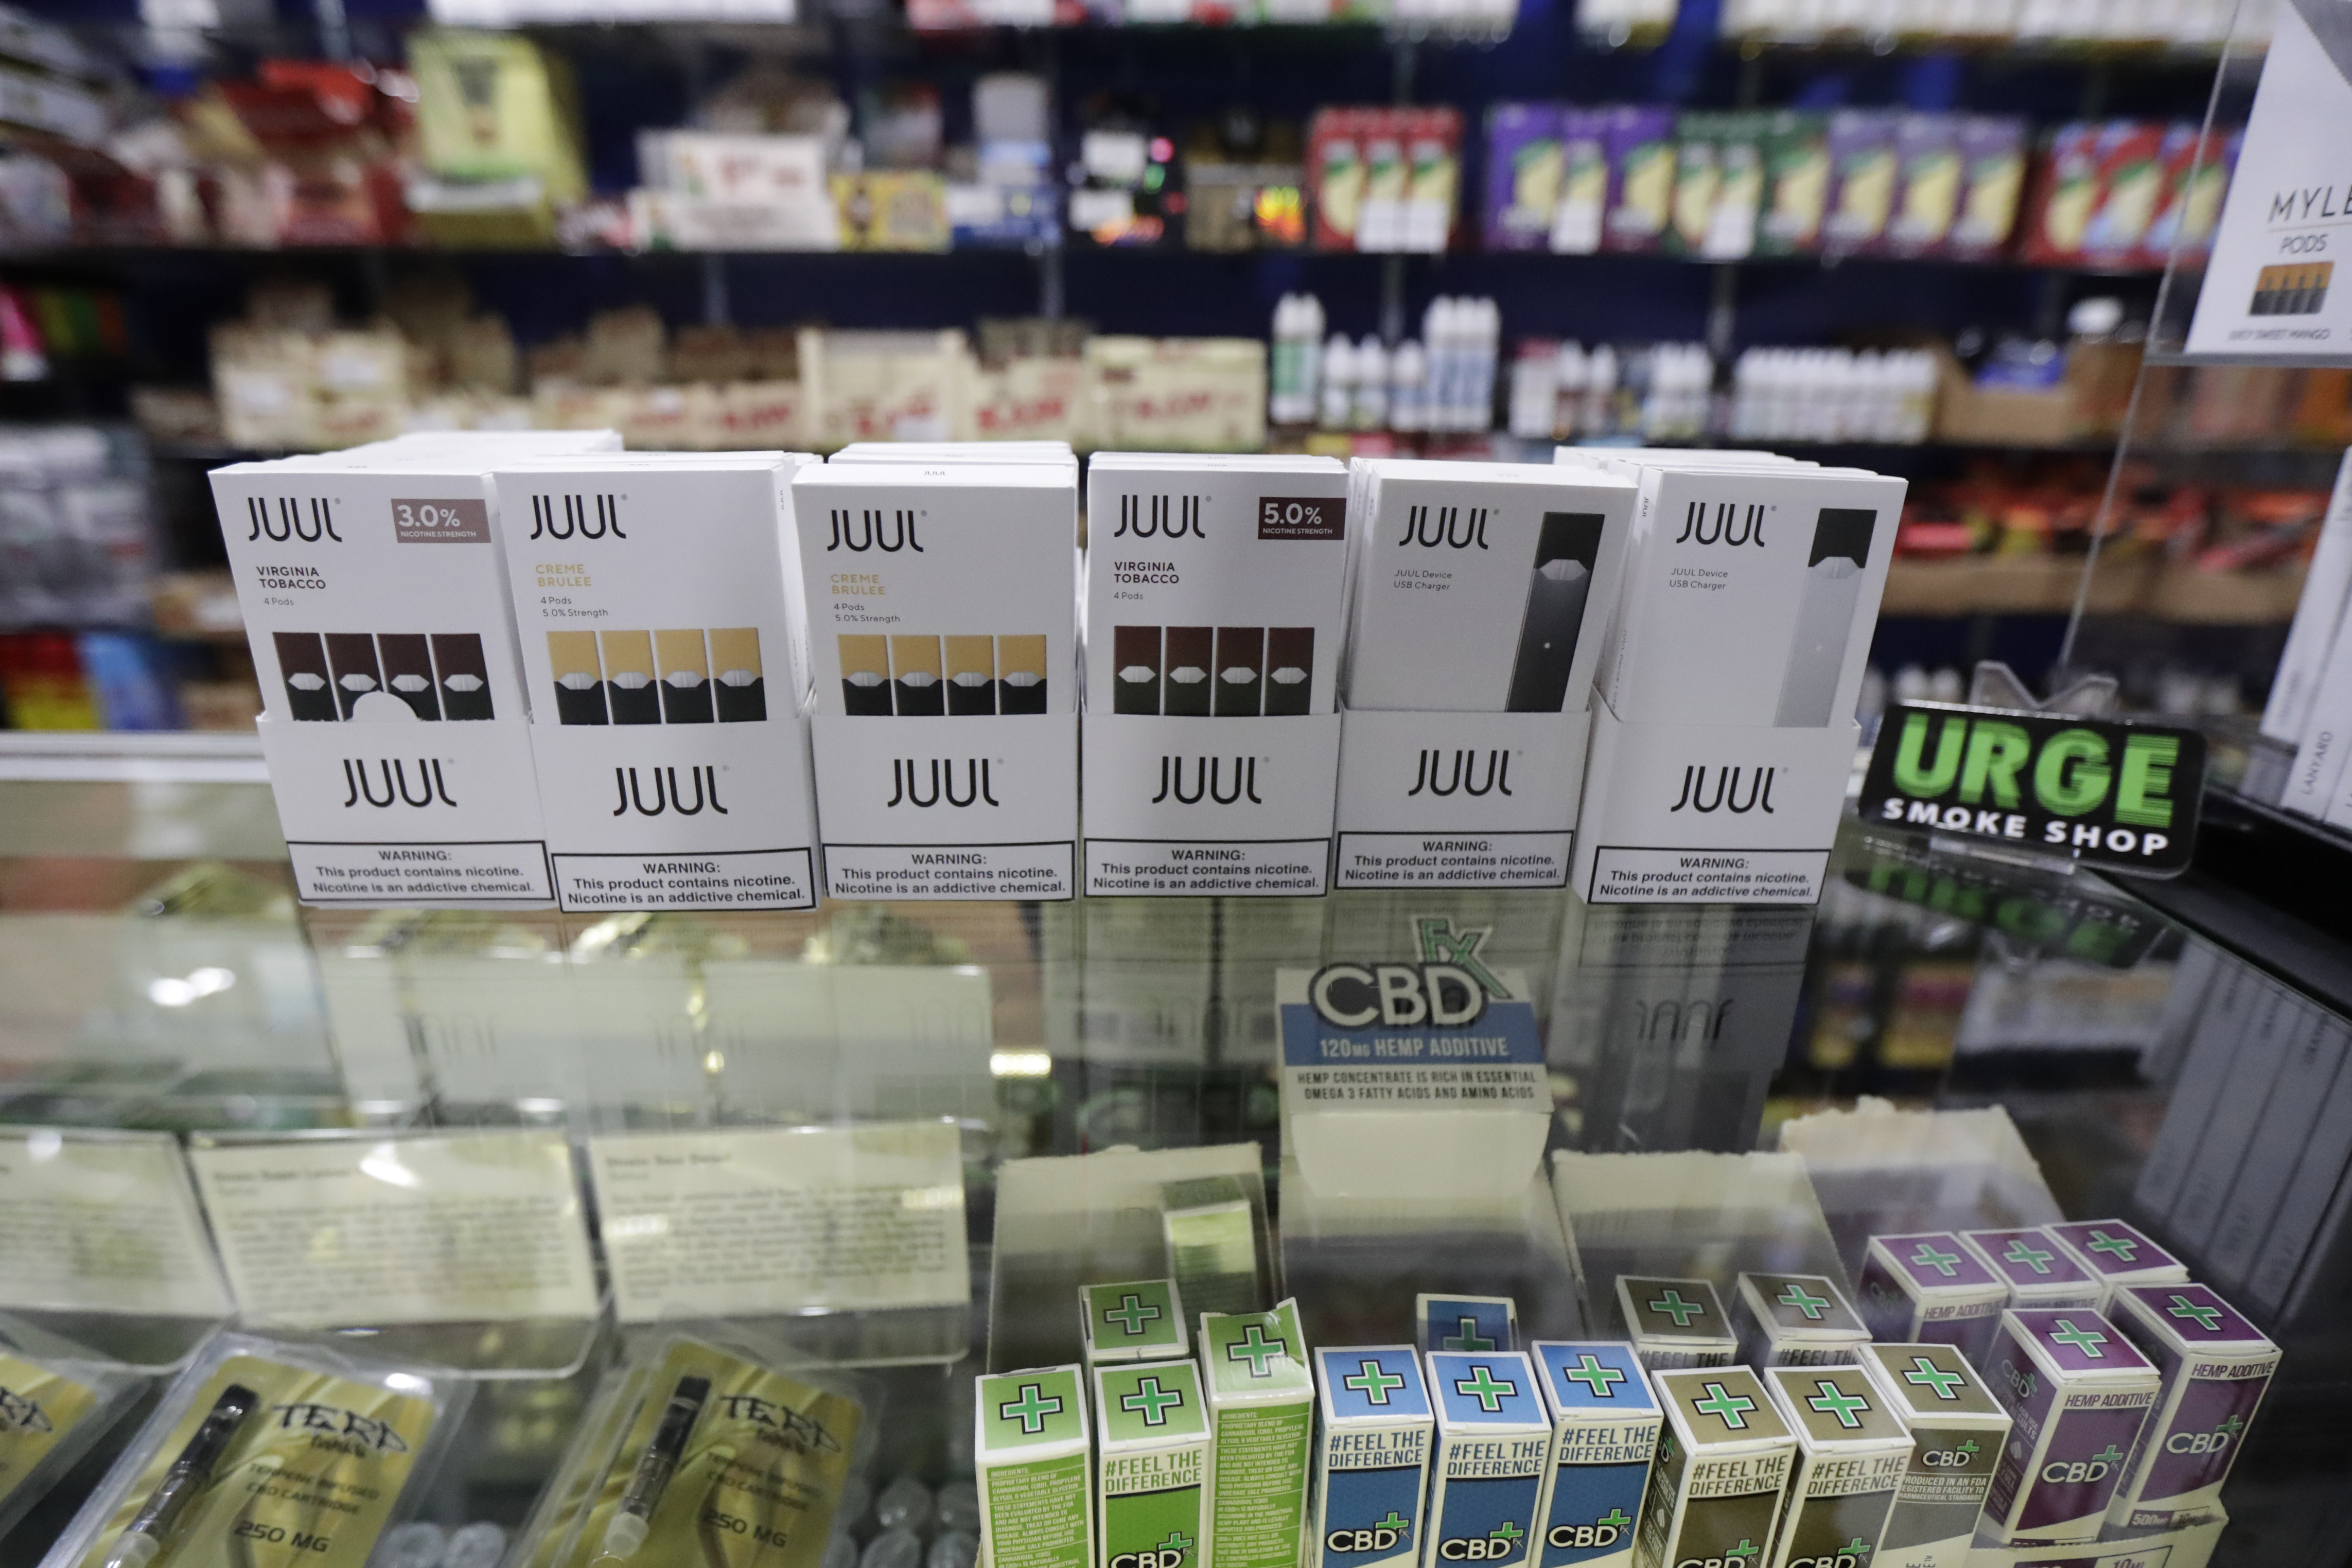 Packages of Juul electronic cigarettes are seen on display at Urge, a smoke shop in Hoboken, N.J., in December 2018.